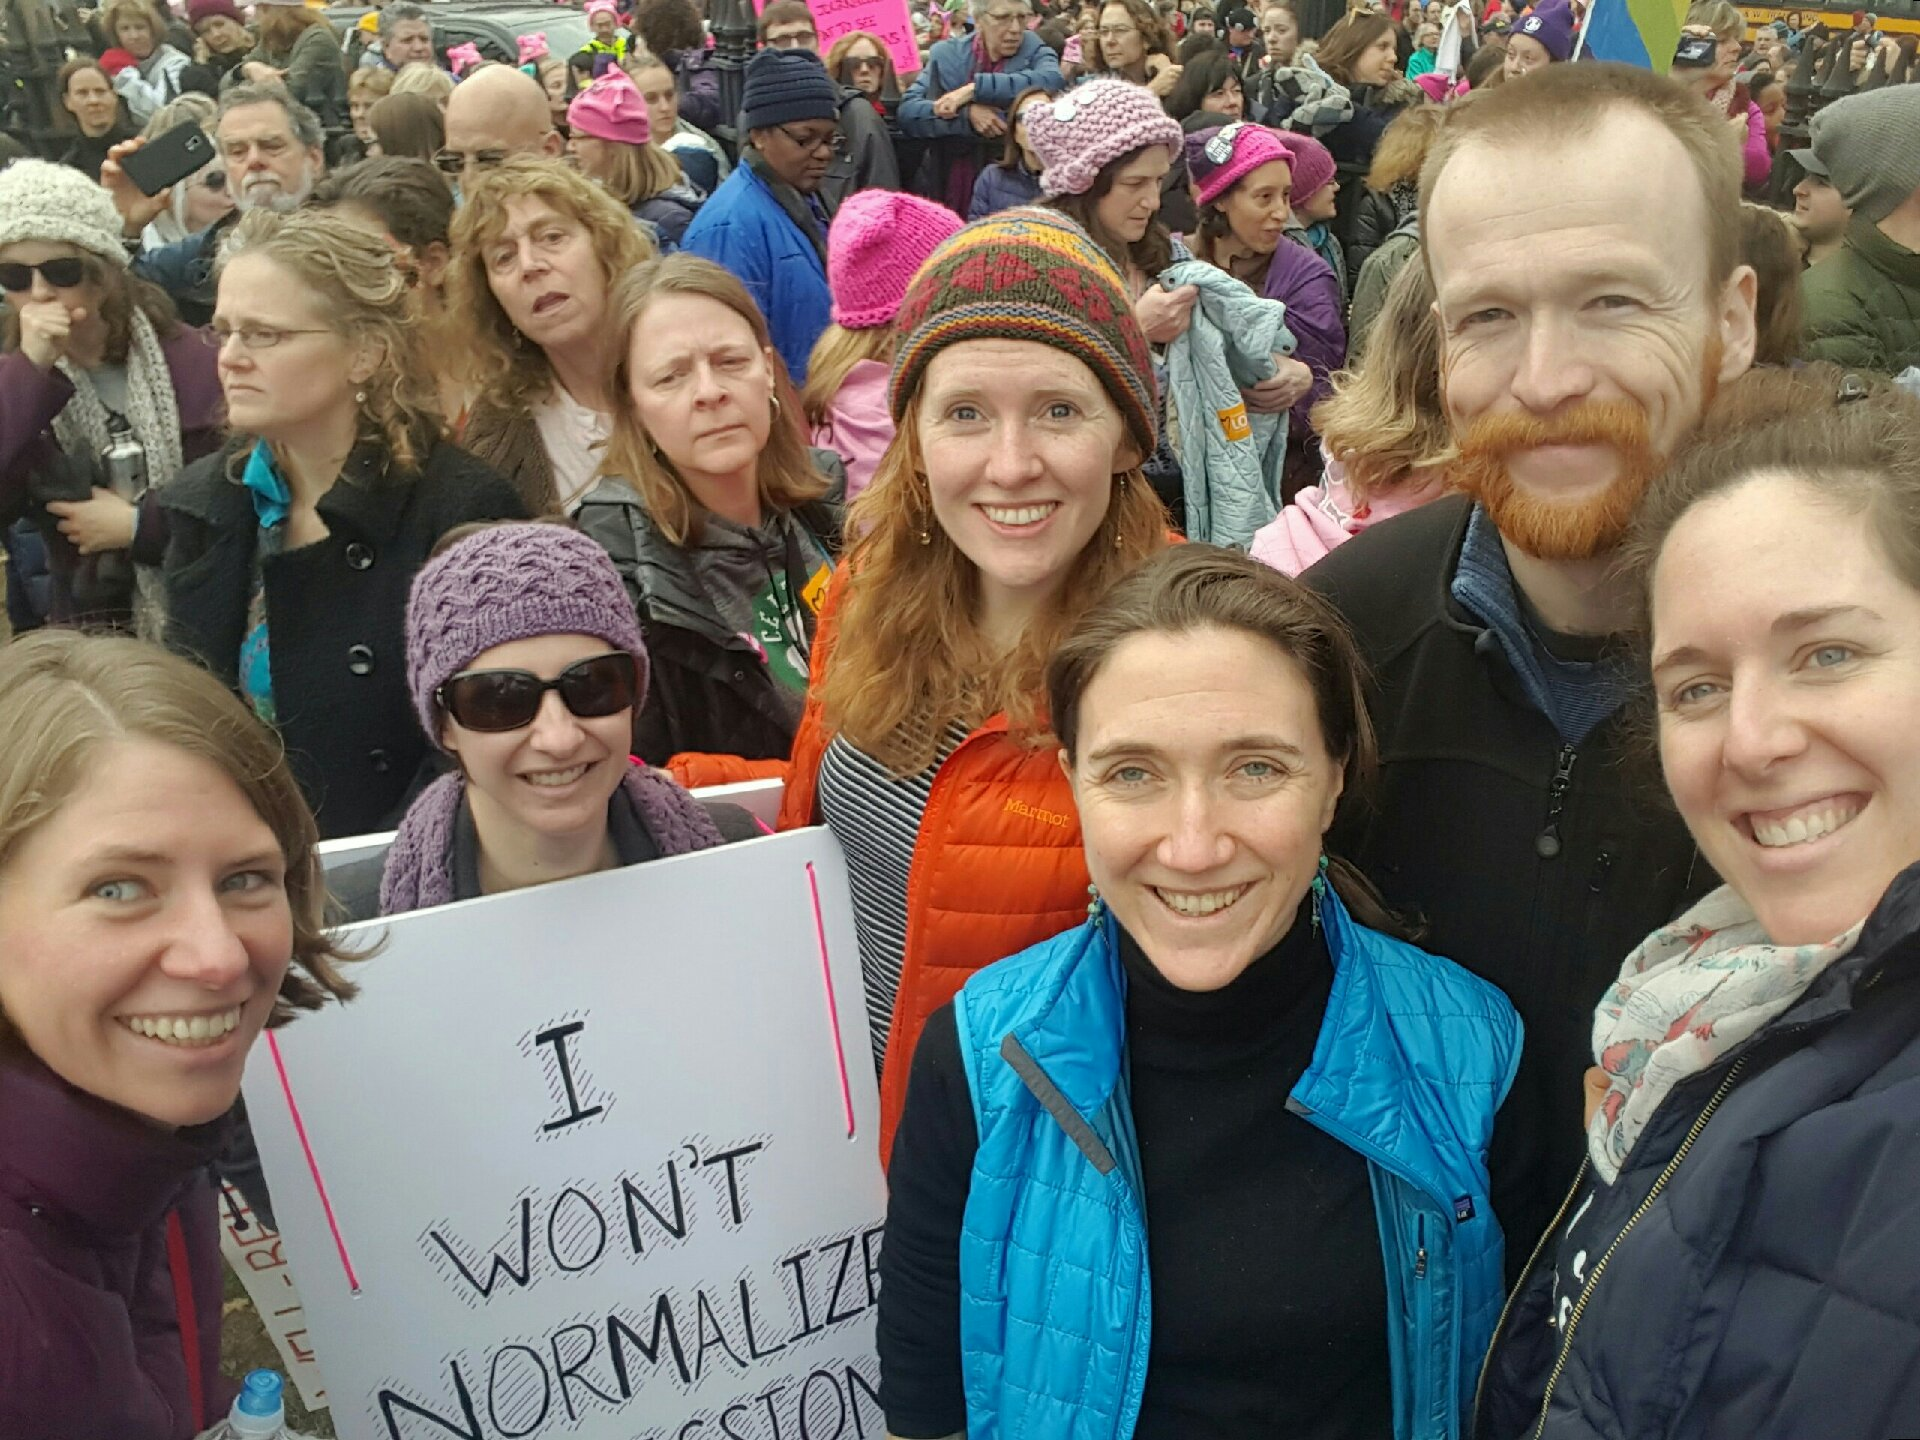 An image of me at the March for Women